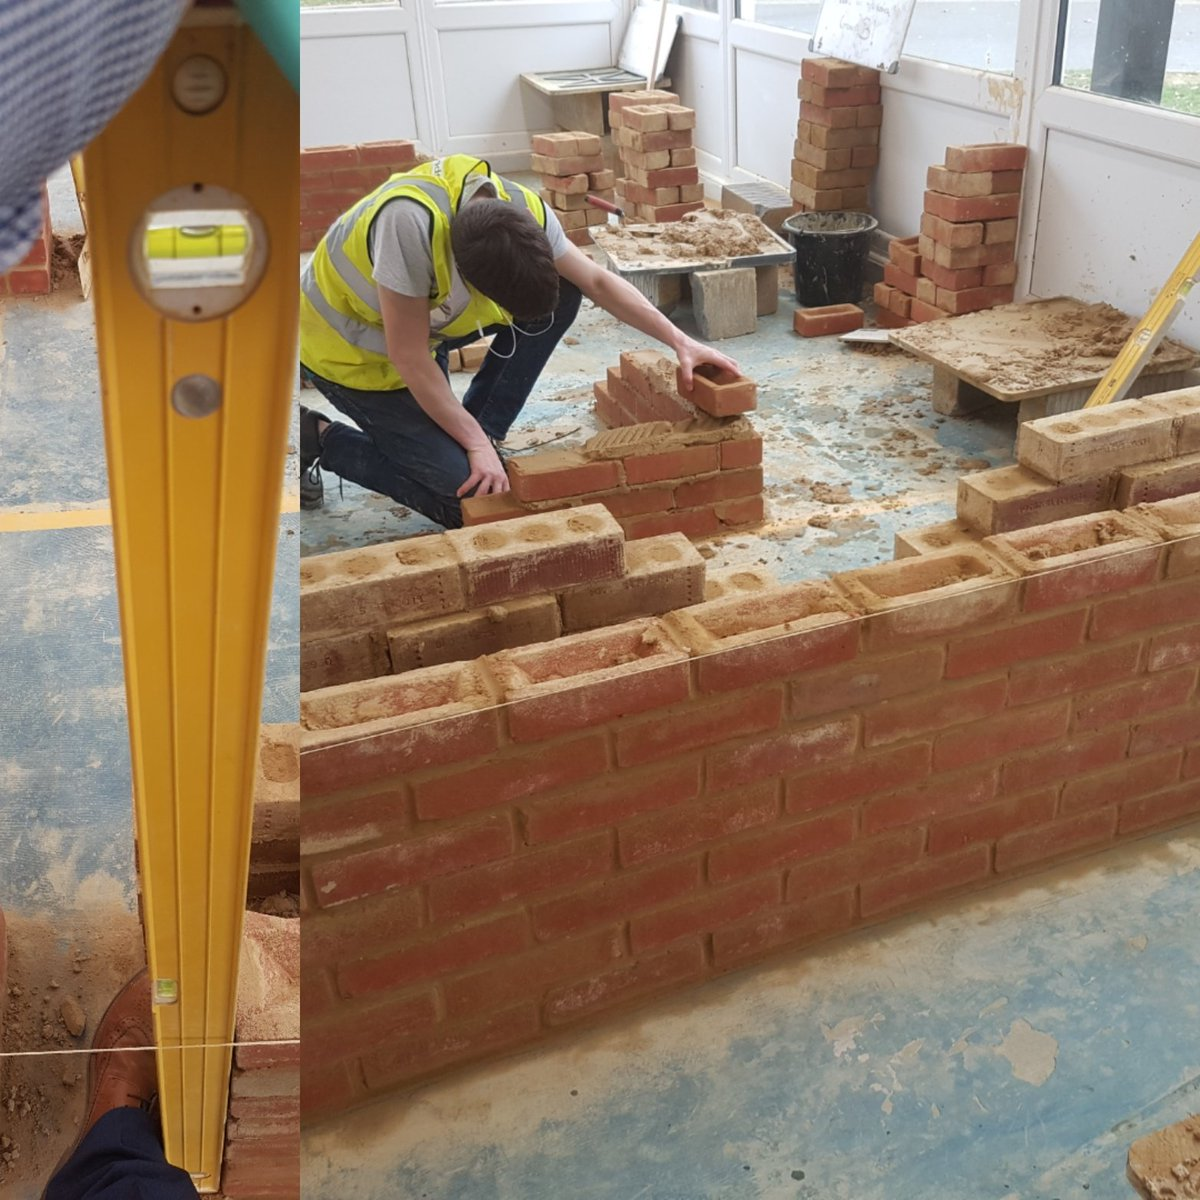 Great work by Level 1A Naomi H. Building brickwork to the line. @BritainBrickMBH @Liz_BreedonCem @FEBrooklands @EveLivett #newskills <br>http://pic.twitter.com/mdbqDVAvPo